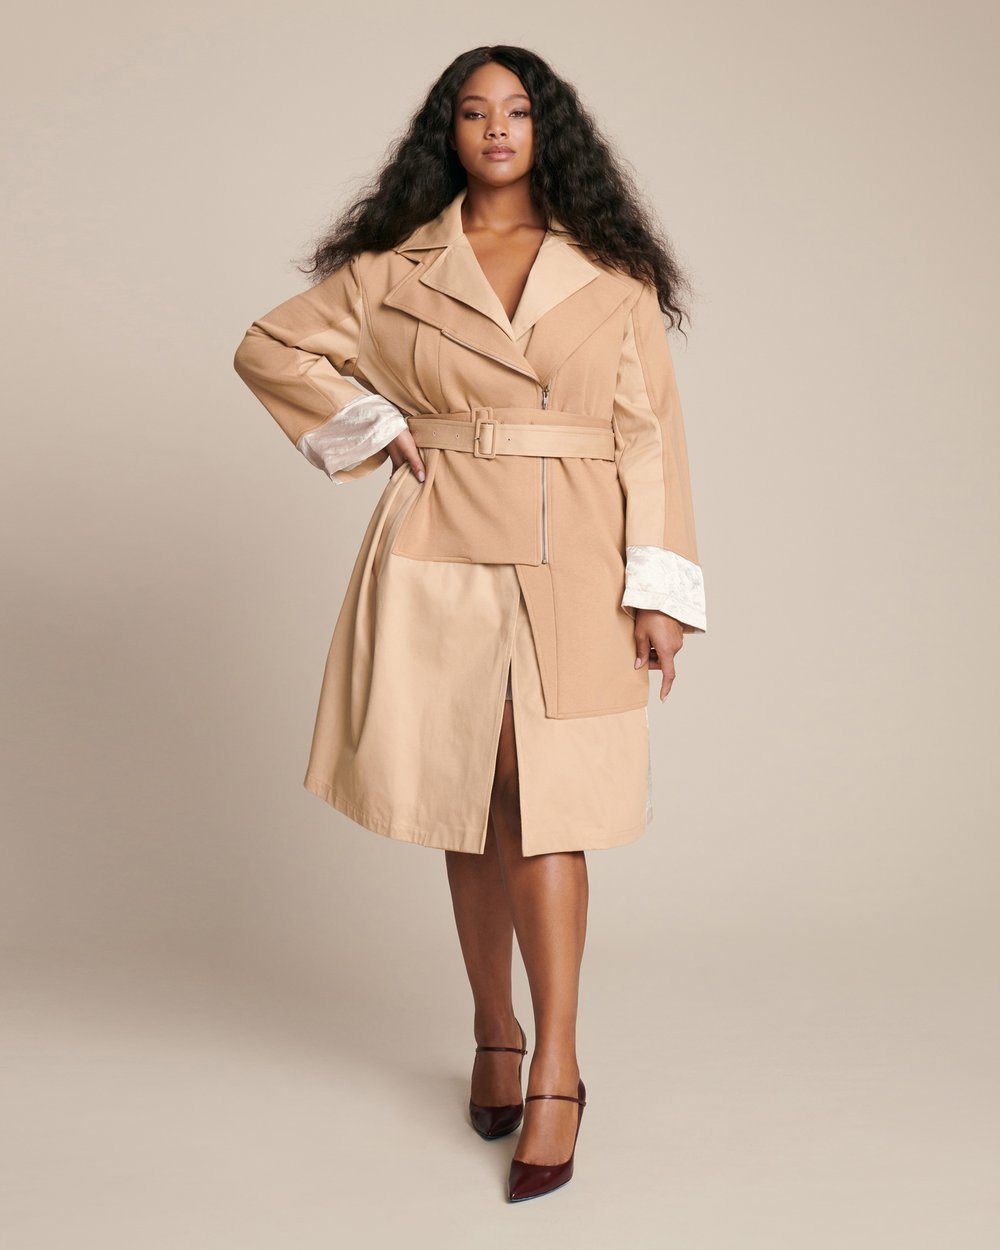 Luxury Plus SIze Fashion Finds at 11 Honore: KOCHÉ Deconstructed Plus Size Trench